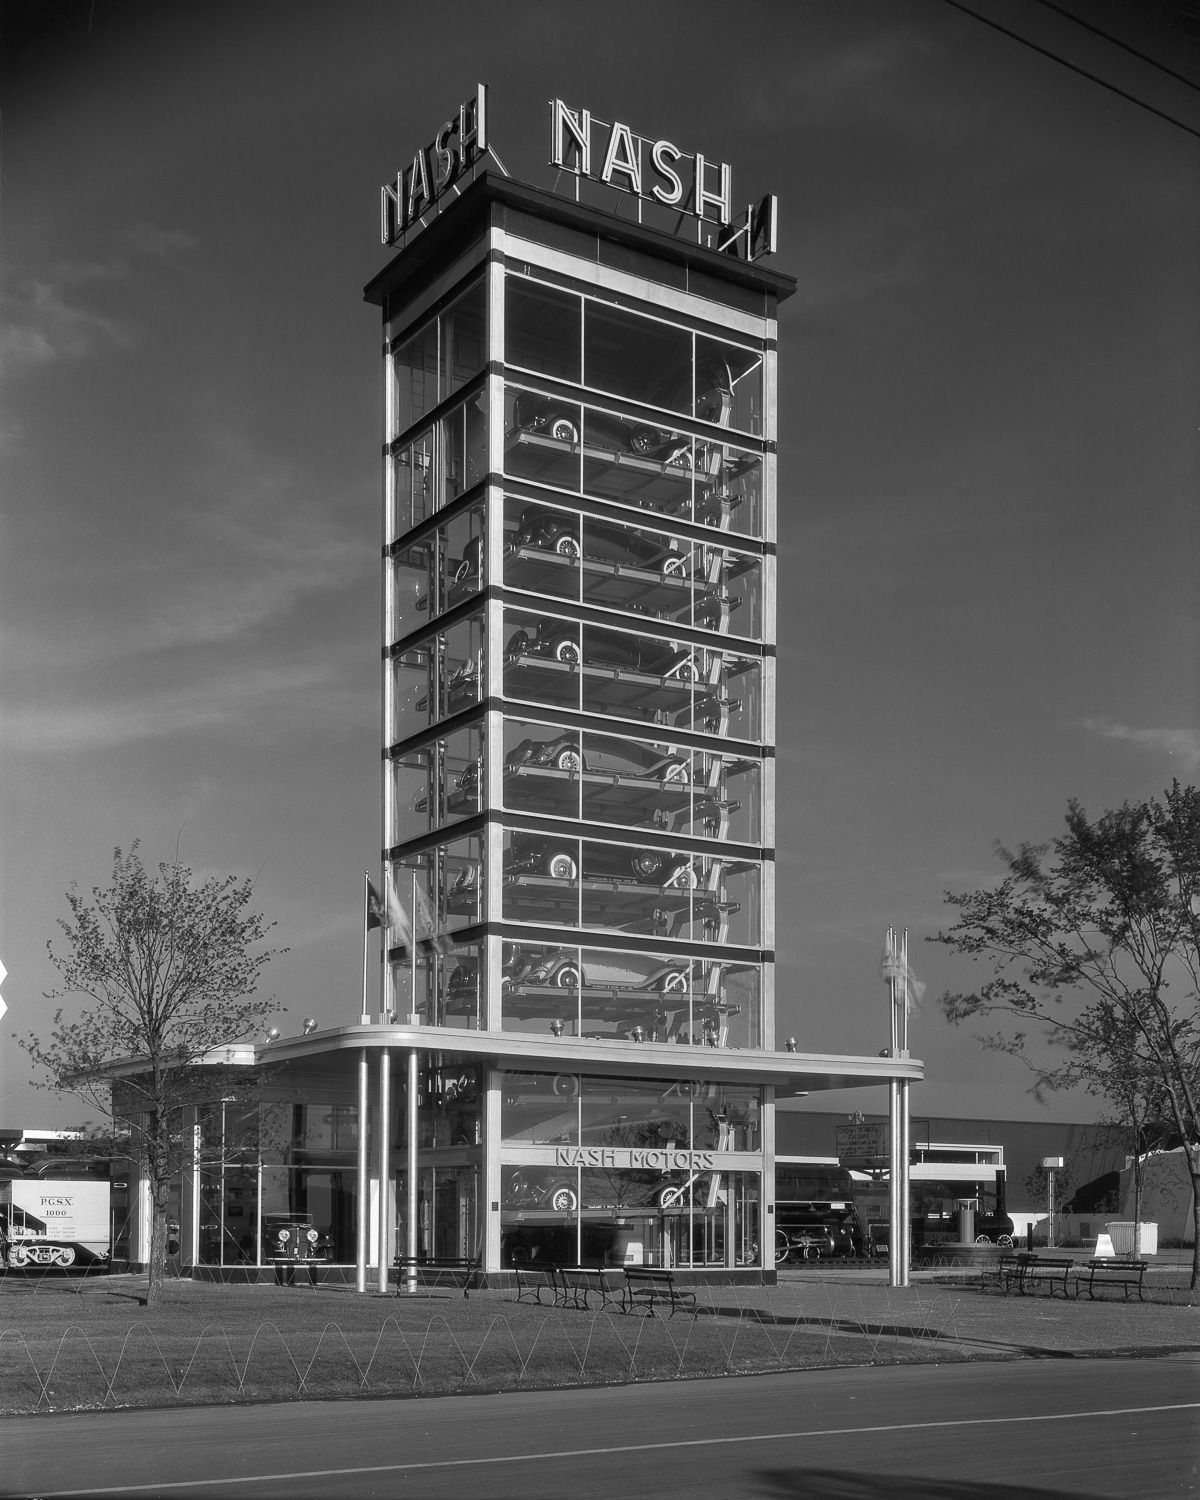 nash motors in 1930